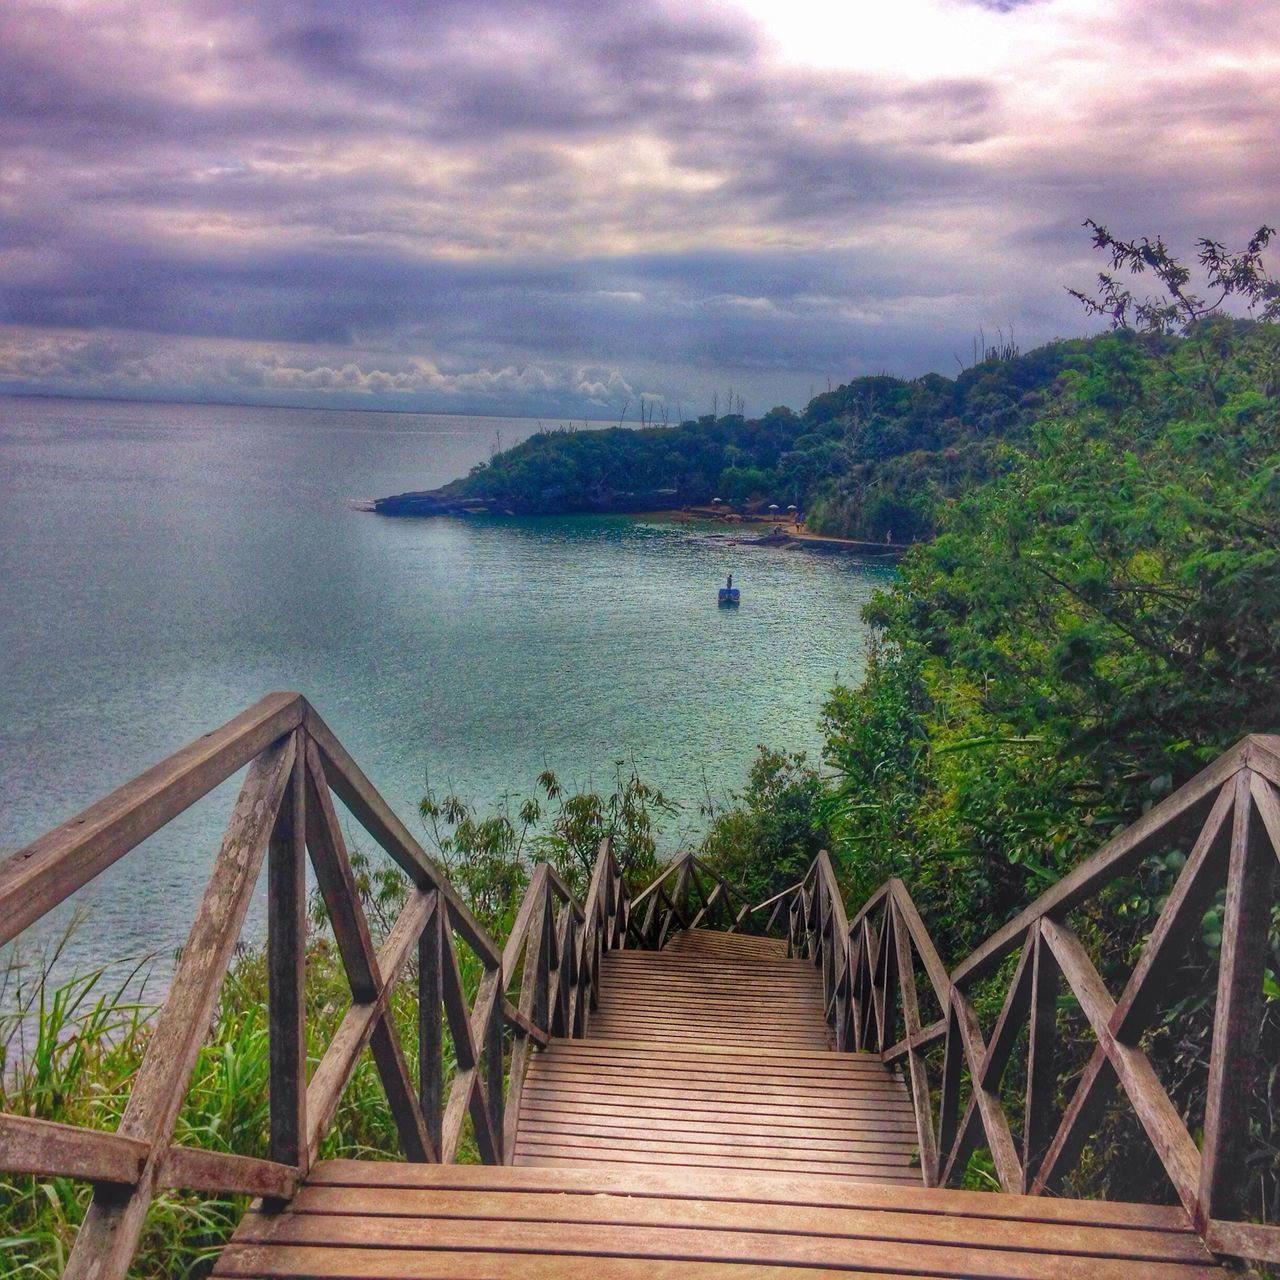 water, sea, railing, sky, nature, cloud - sky, scenics, beauty in nature, tranquil scene, jetty, tranquility, mountain, outdoors, travel destinations, tree, day, vacations, nautical vessel, no people